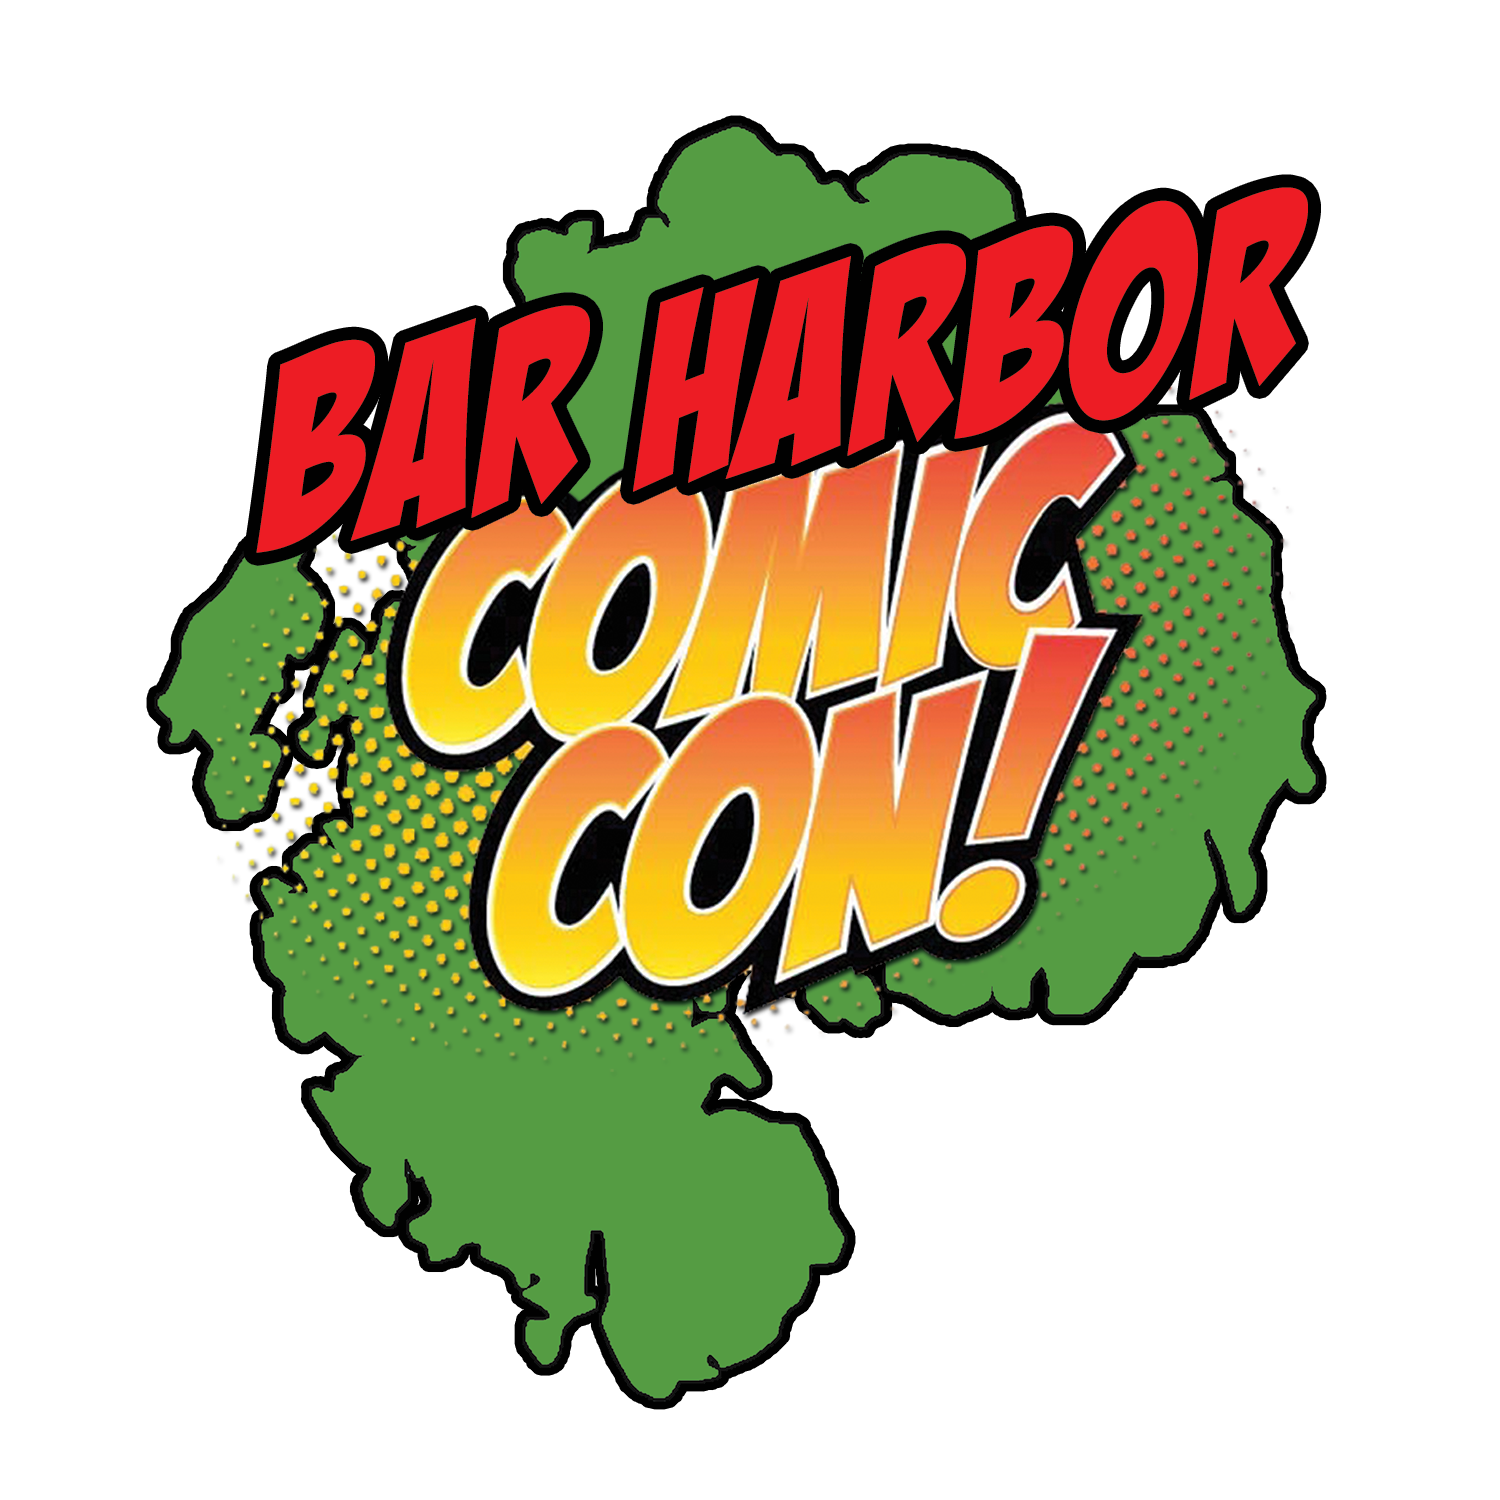 Bar Harbor Comic Con